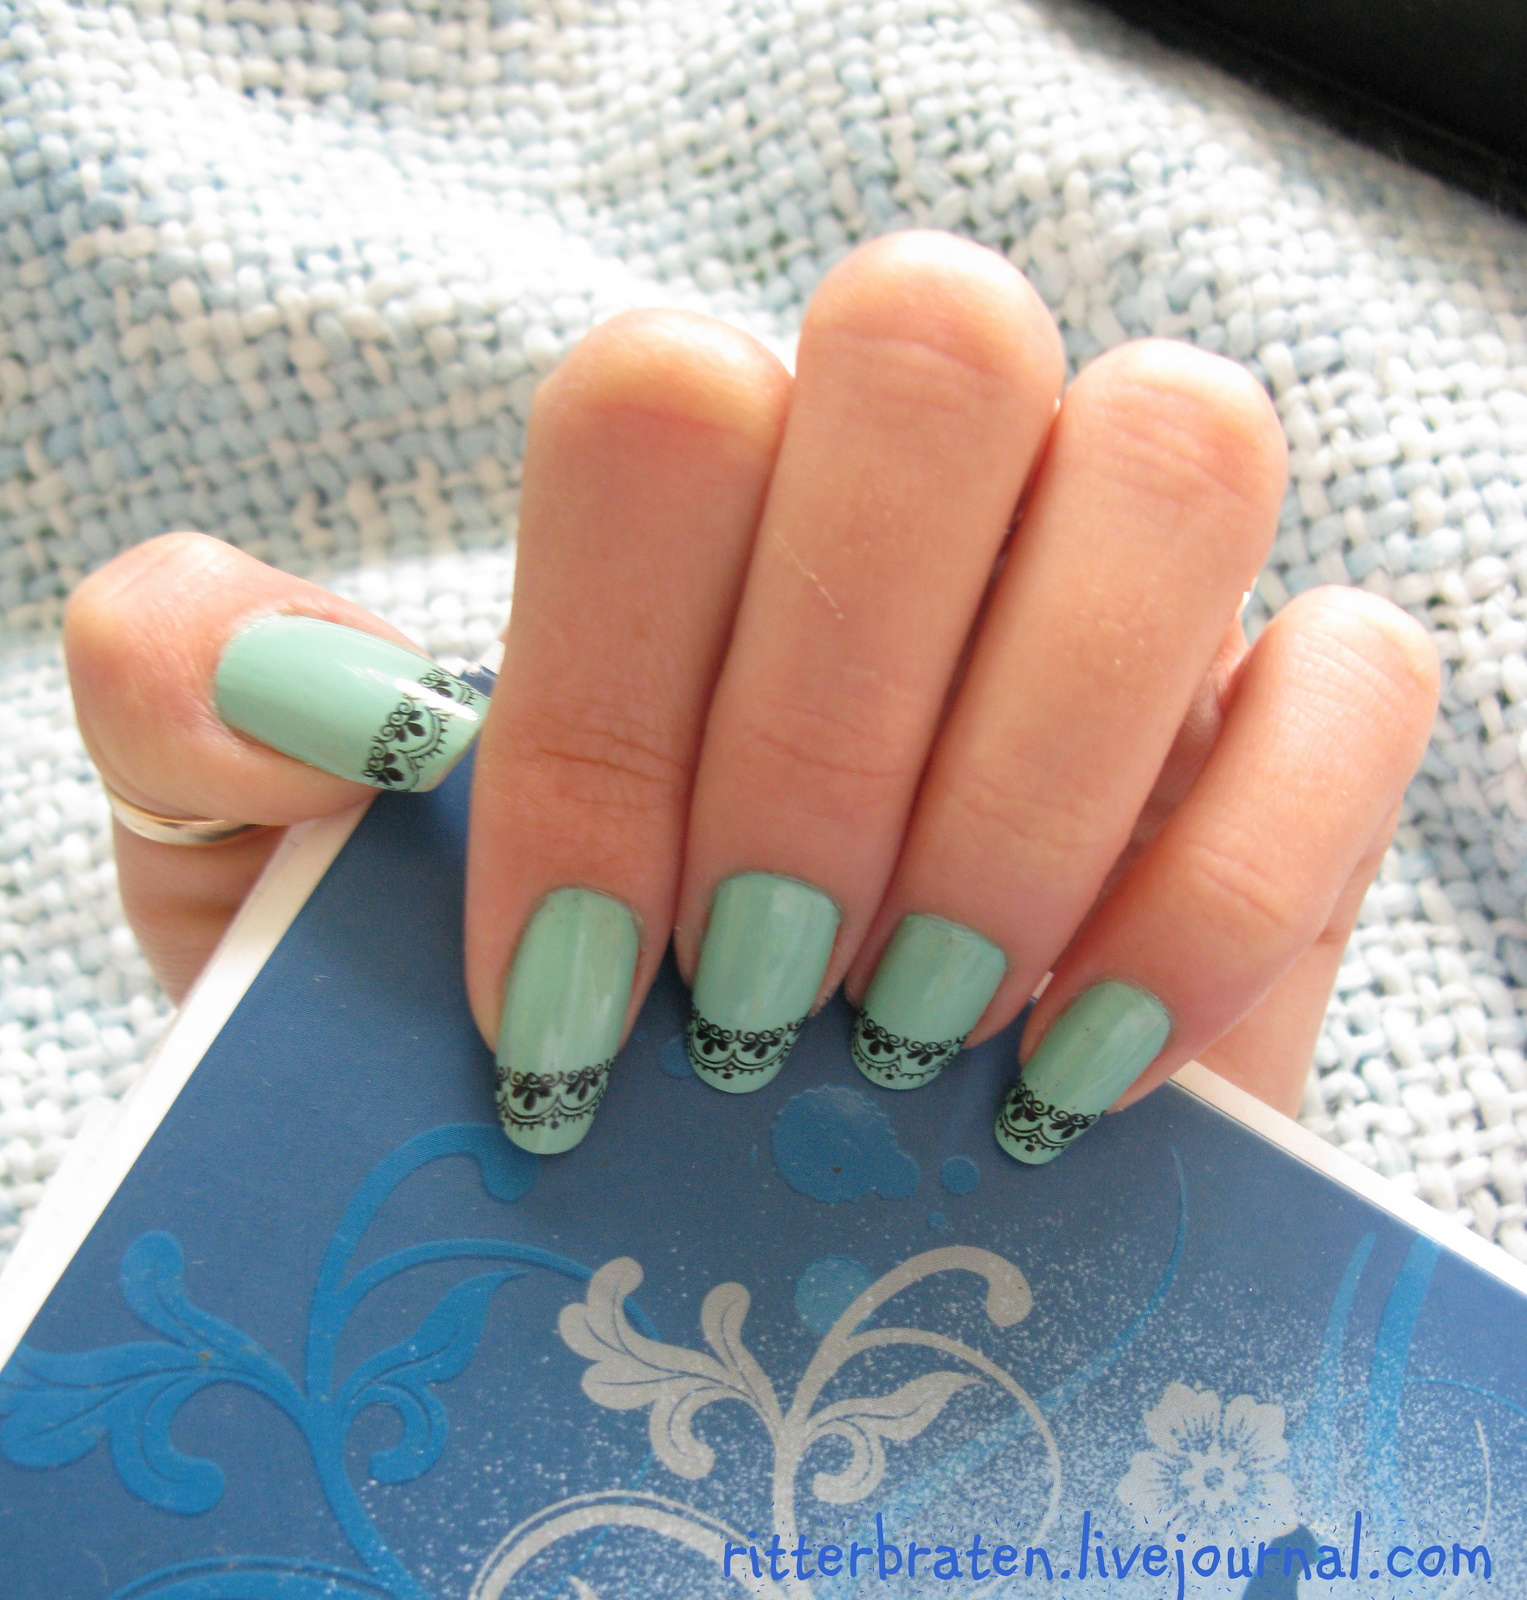 konad, m57, nails, nägel